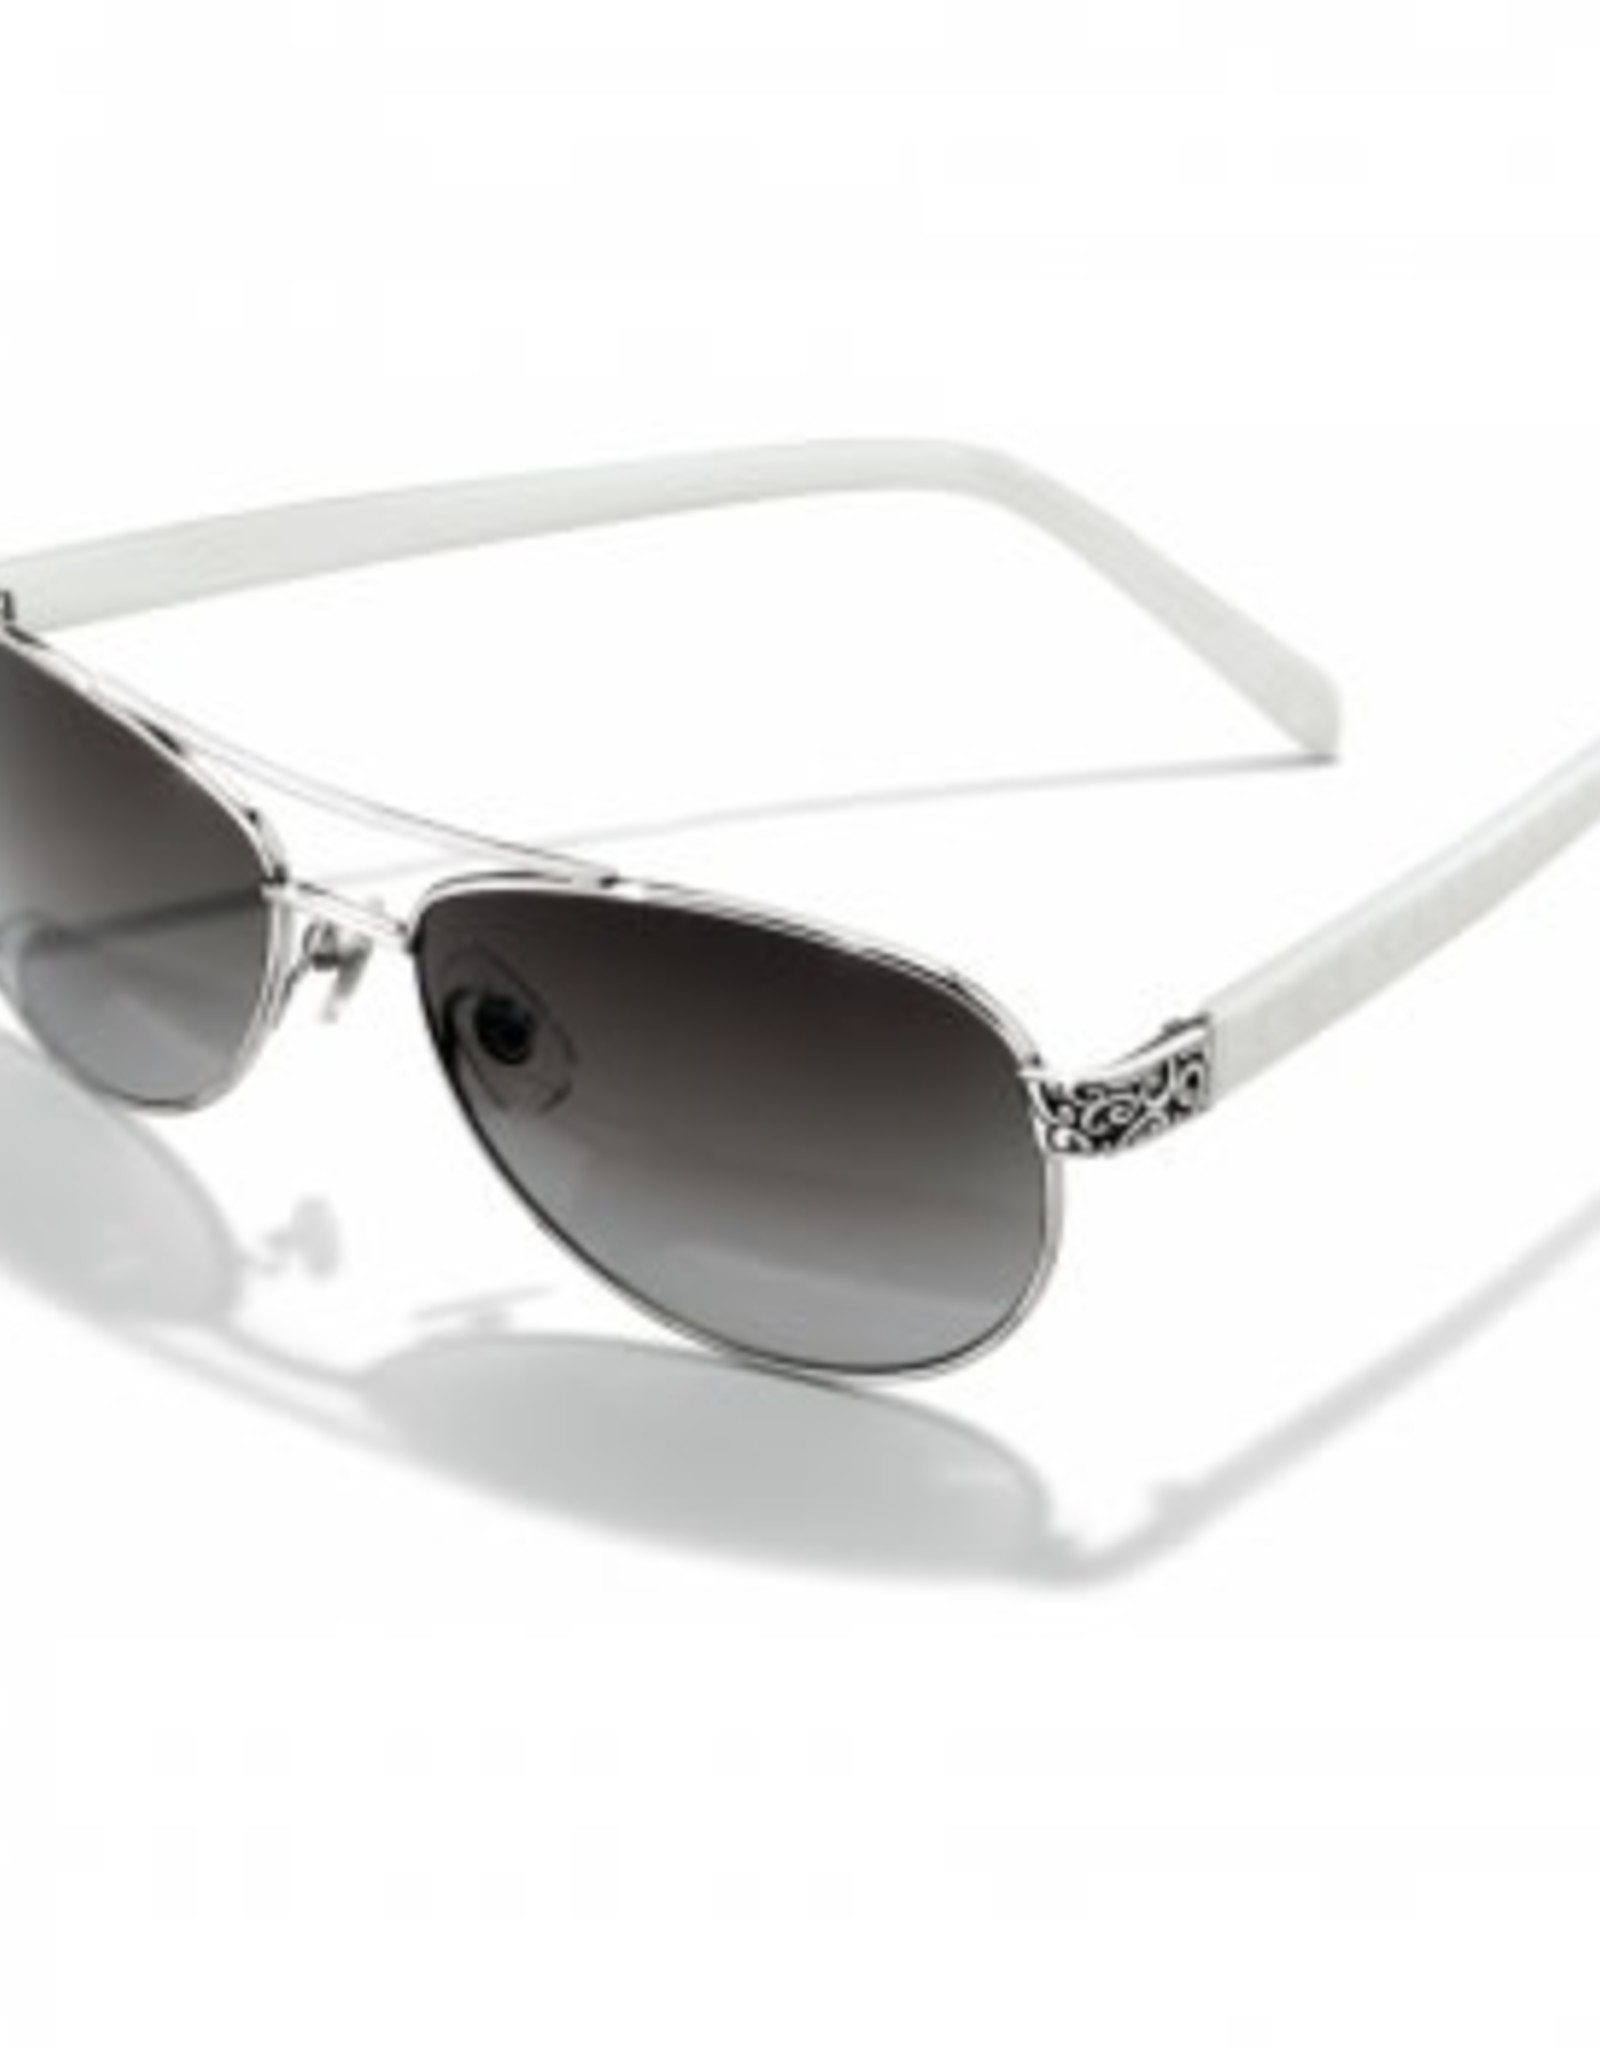 Brighton Sugar Shack Choc/Silver Sunglasses